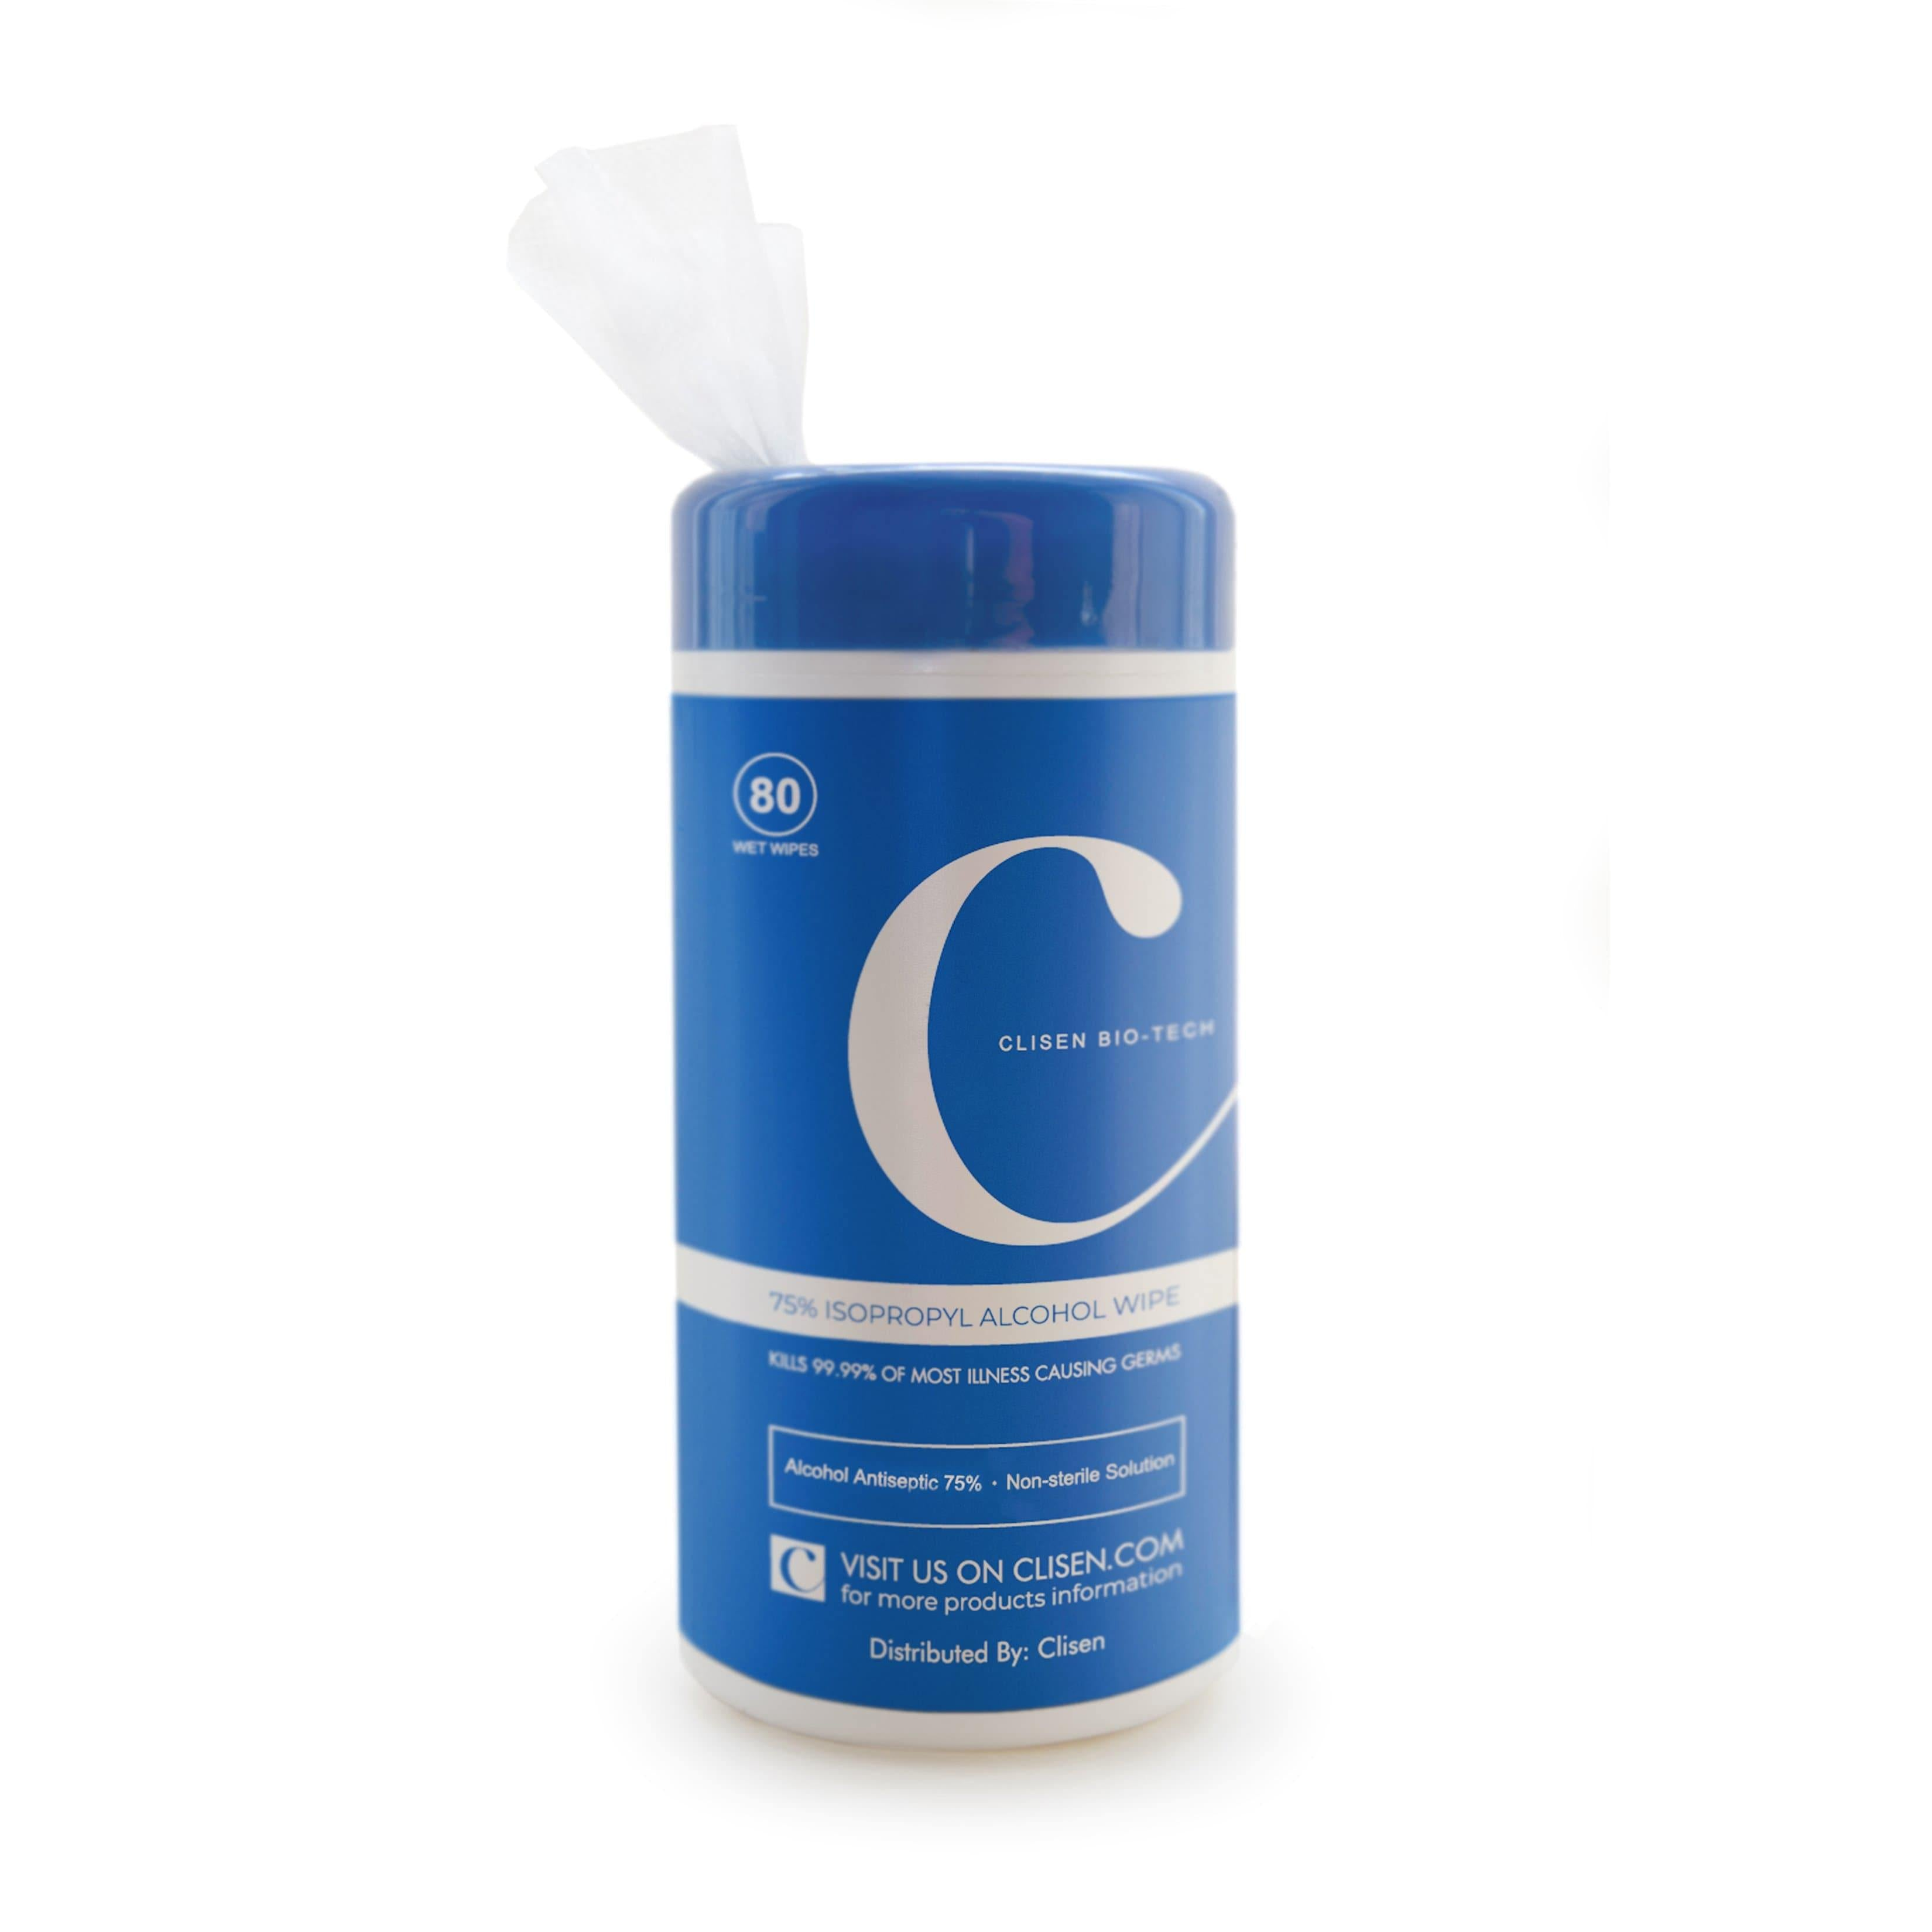 Clisen Anti-Bacterial Wipes 75% Ethyl Solution 5 pcs Value Pack